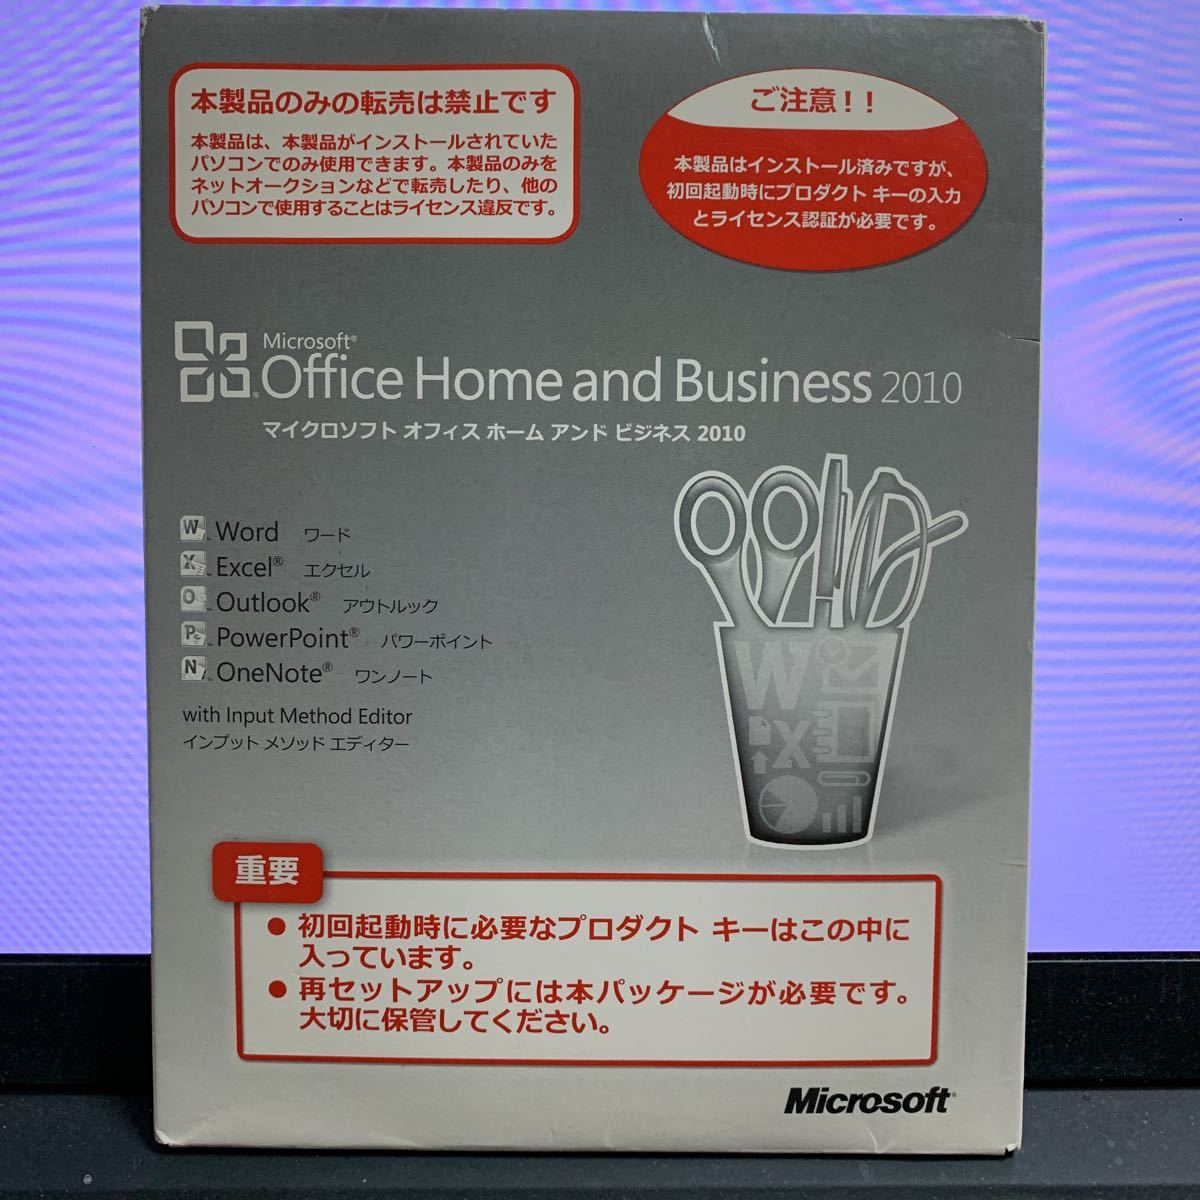 Microsoft Office Home and Business 2010マイクロソフト